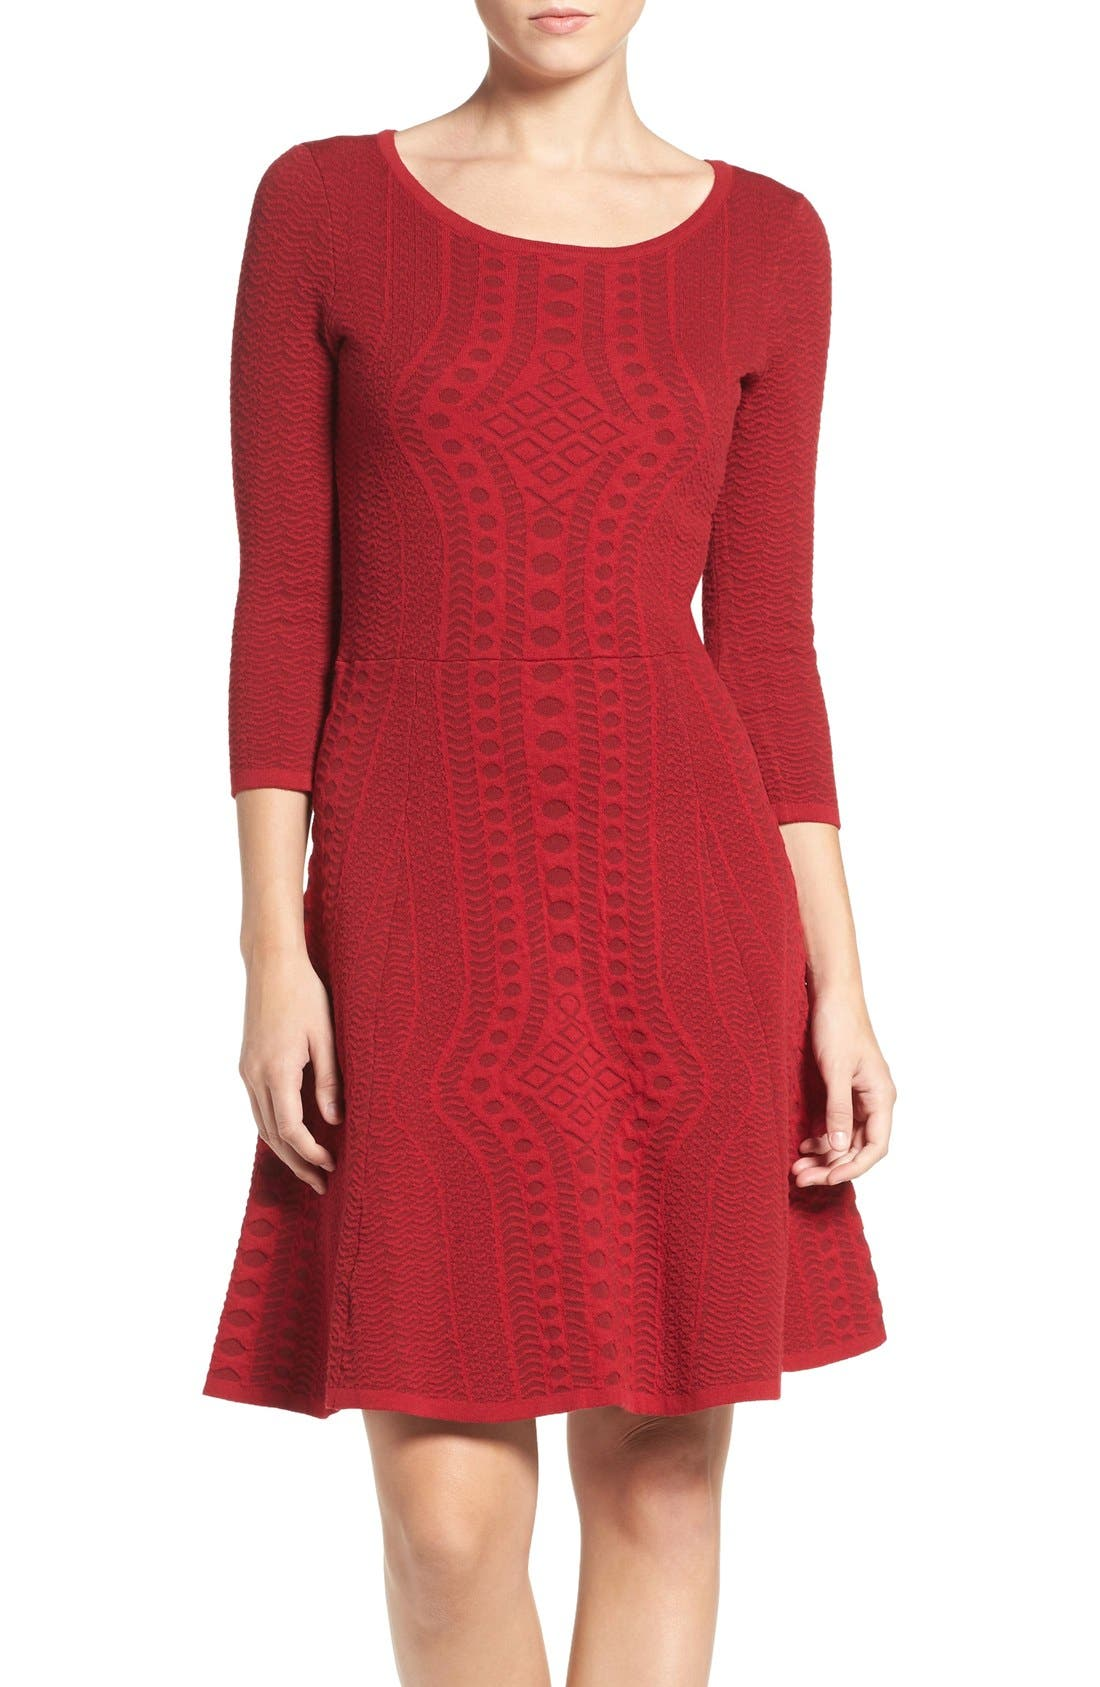 Main Image - Gabby Skye Fit & Flare Sweater Dress